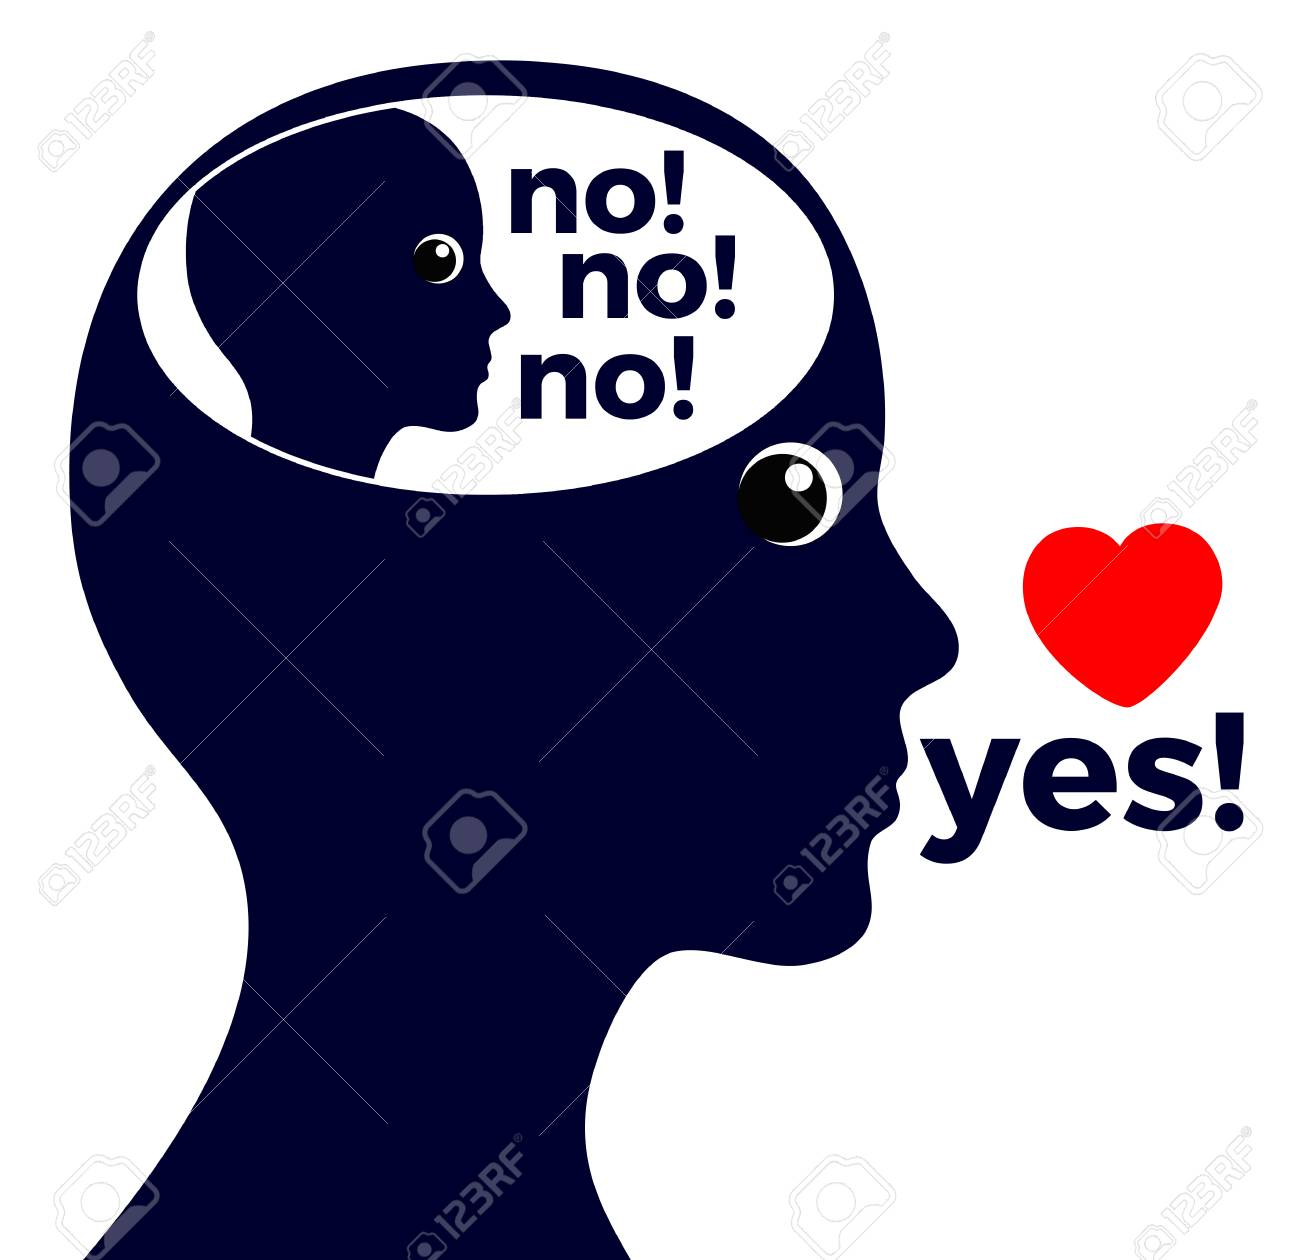 Self-deception or lying to oneself. Woman reads to herself, the inner voice says categorical no, but she actually means yes - 96296269